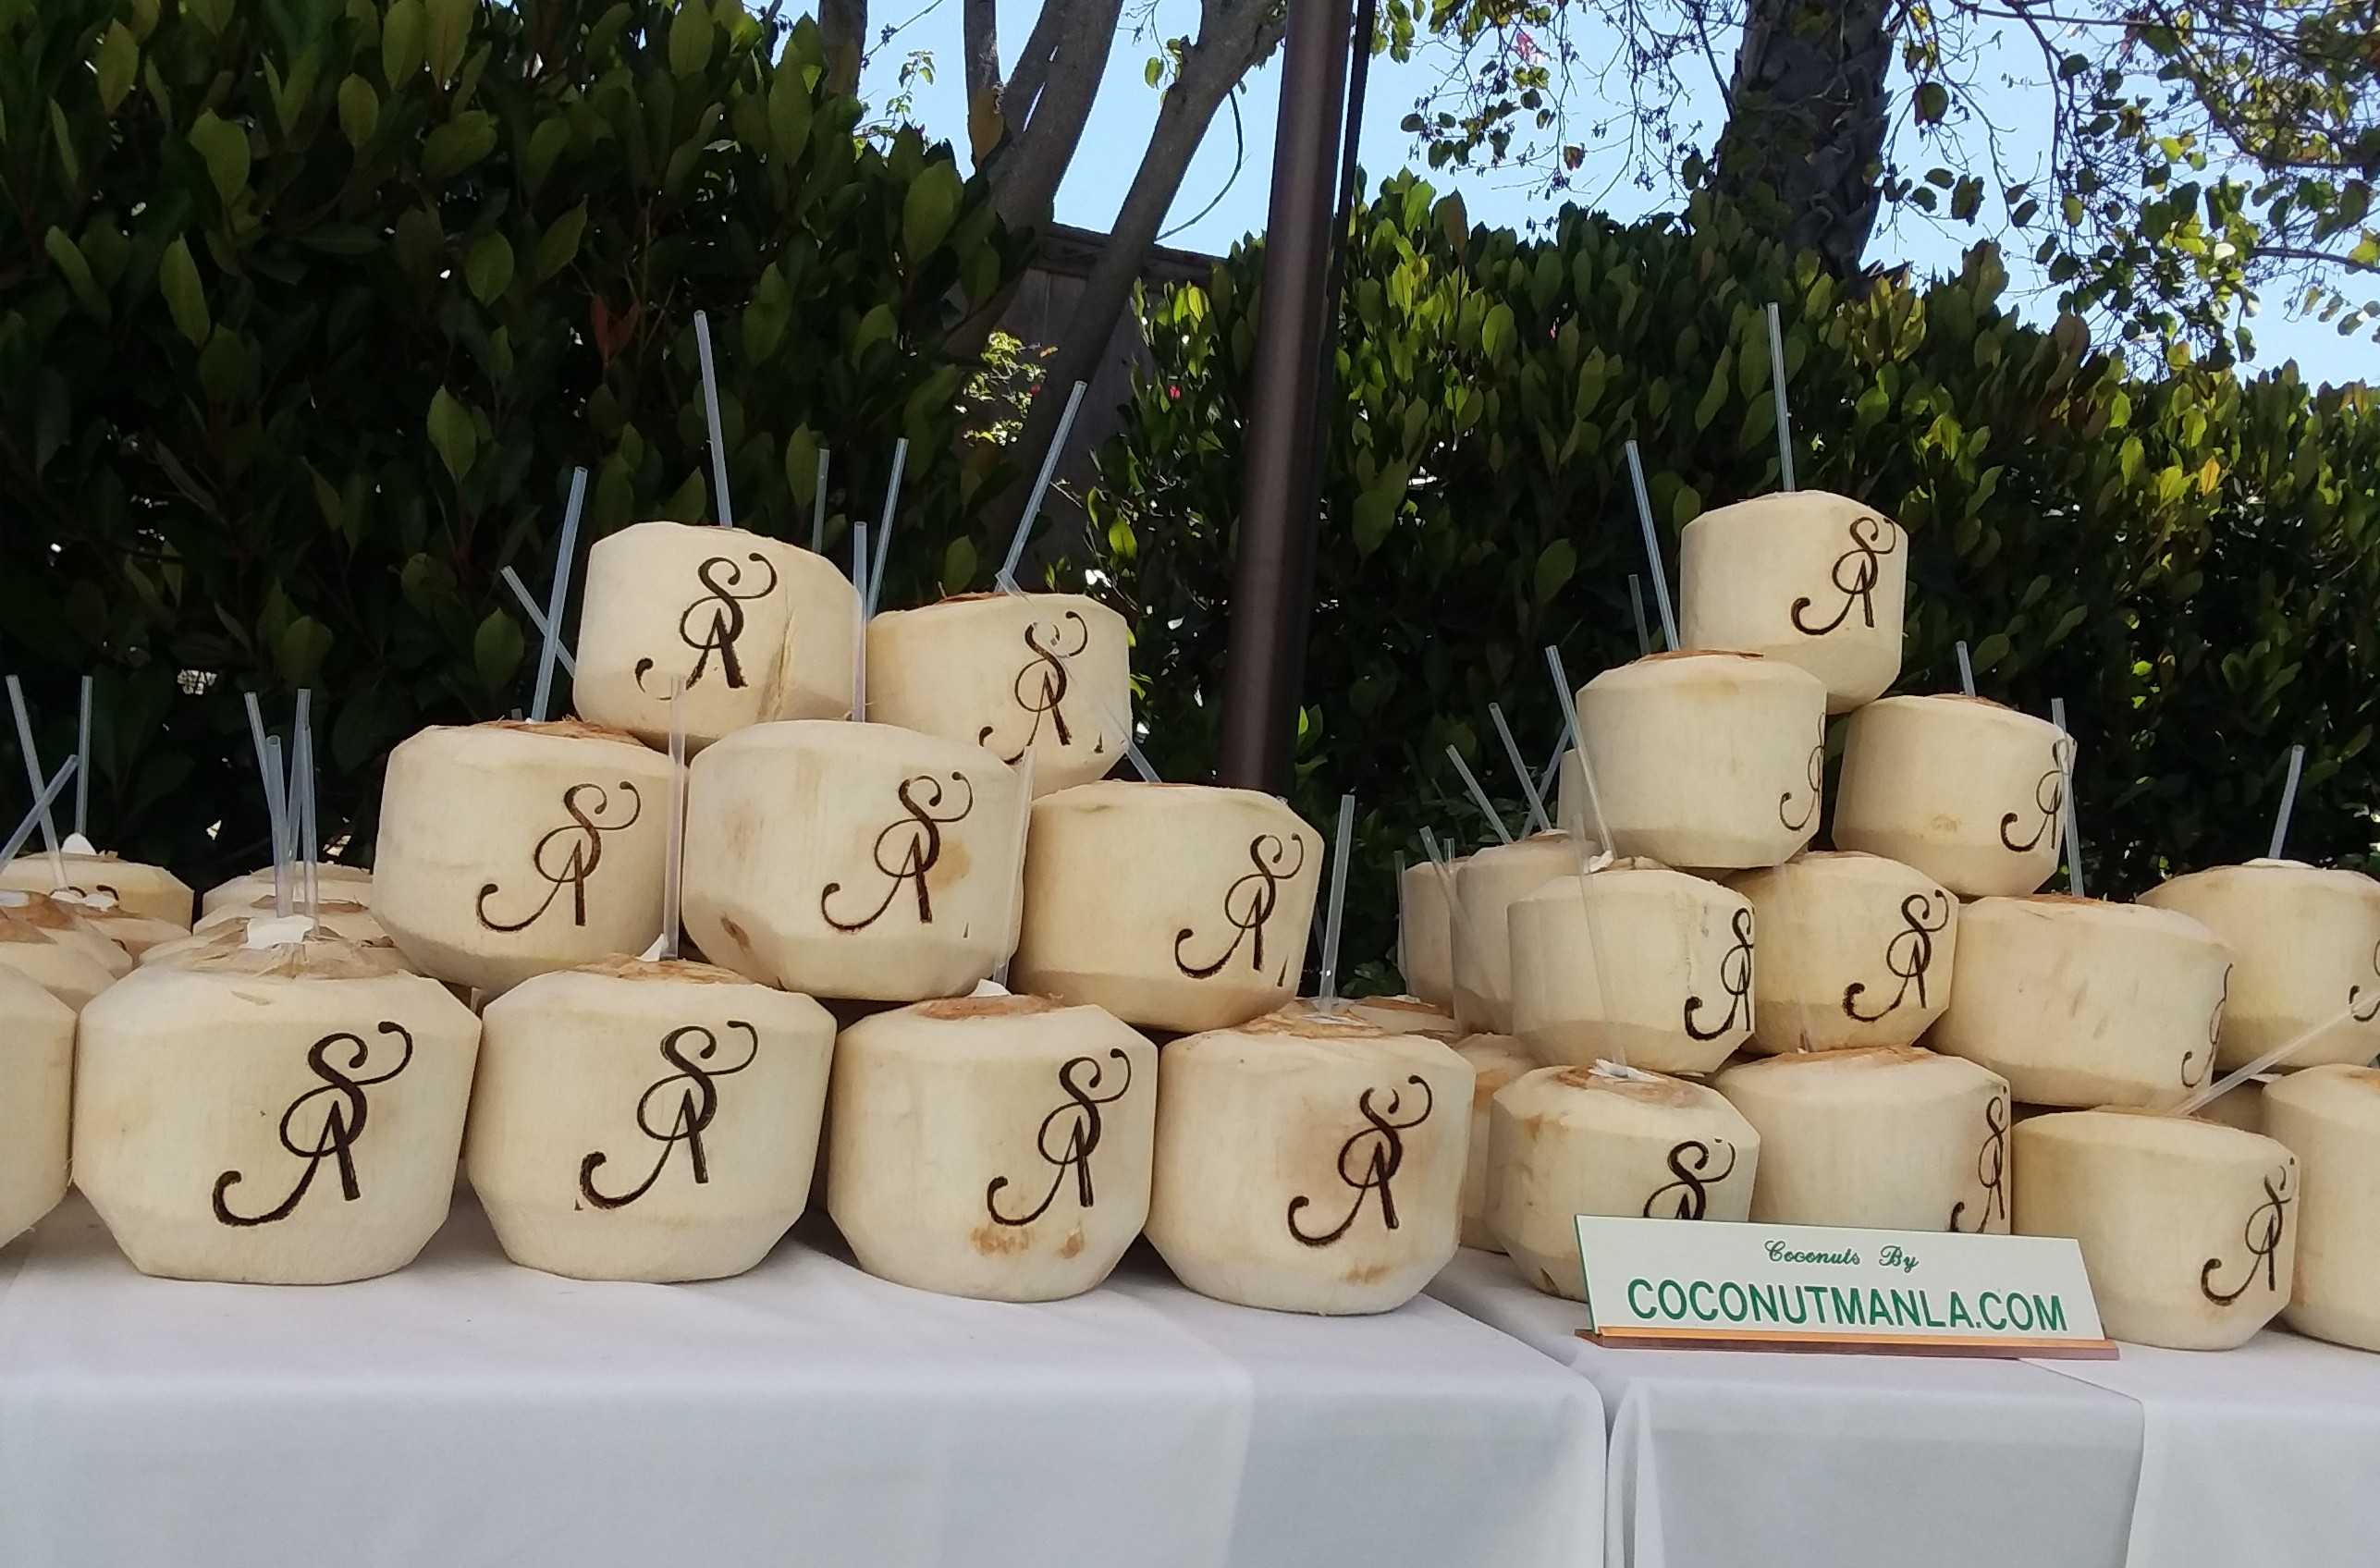 Coconut Buffet Bar for Hindu Weddings and Events